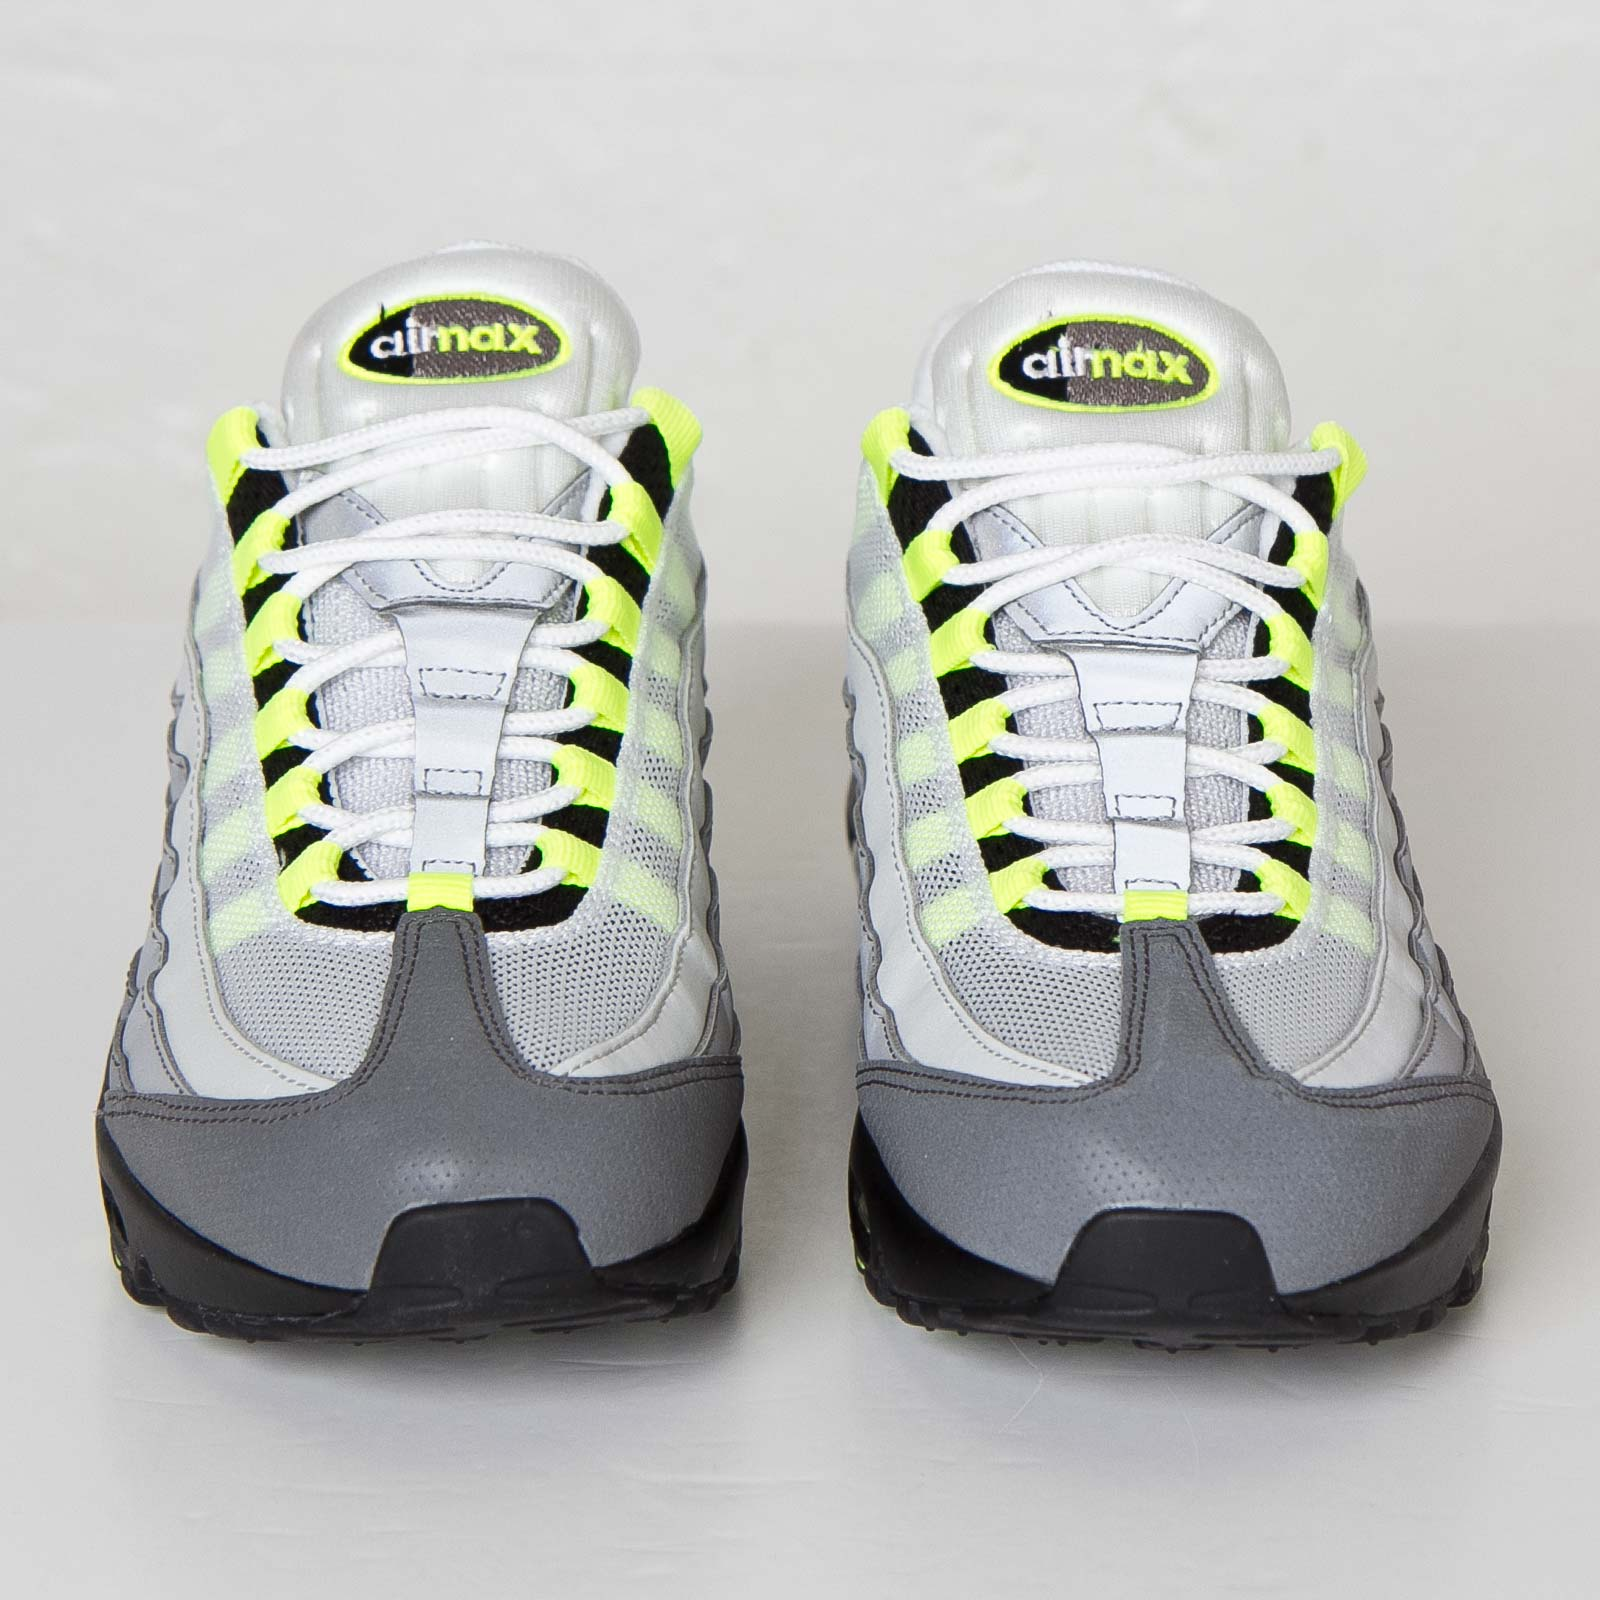 759986 070 Nike Air Max 95 OG Premium Neon Reflective